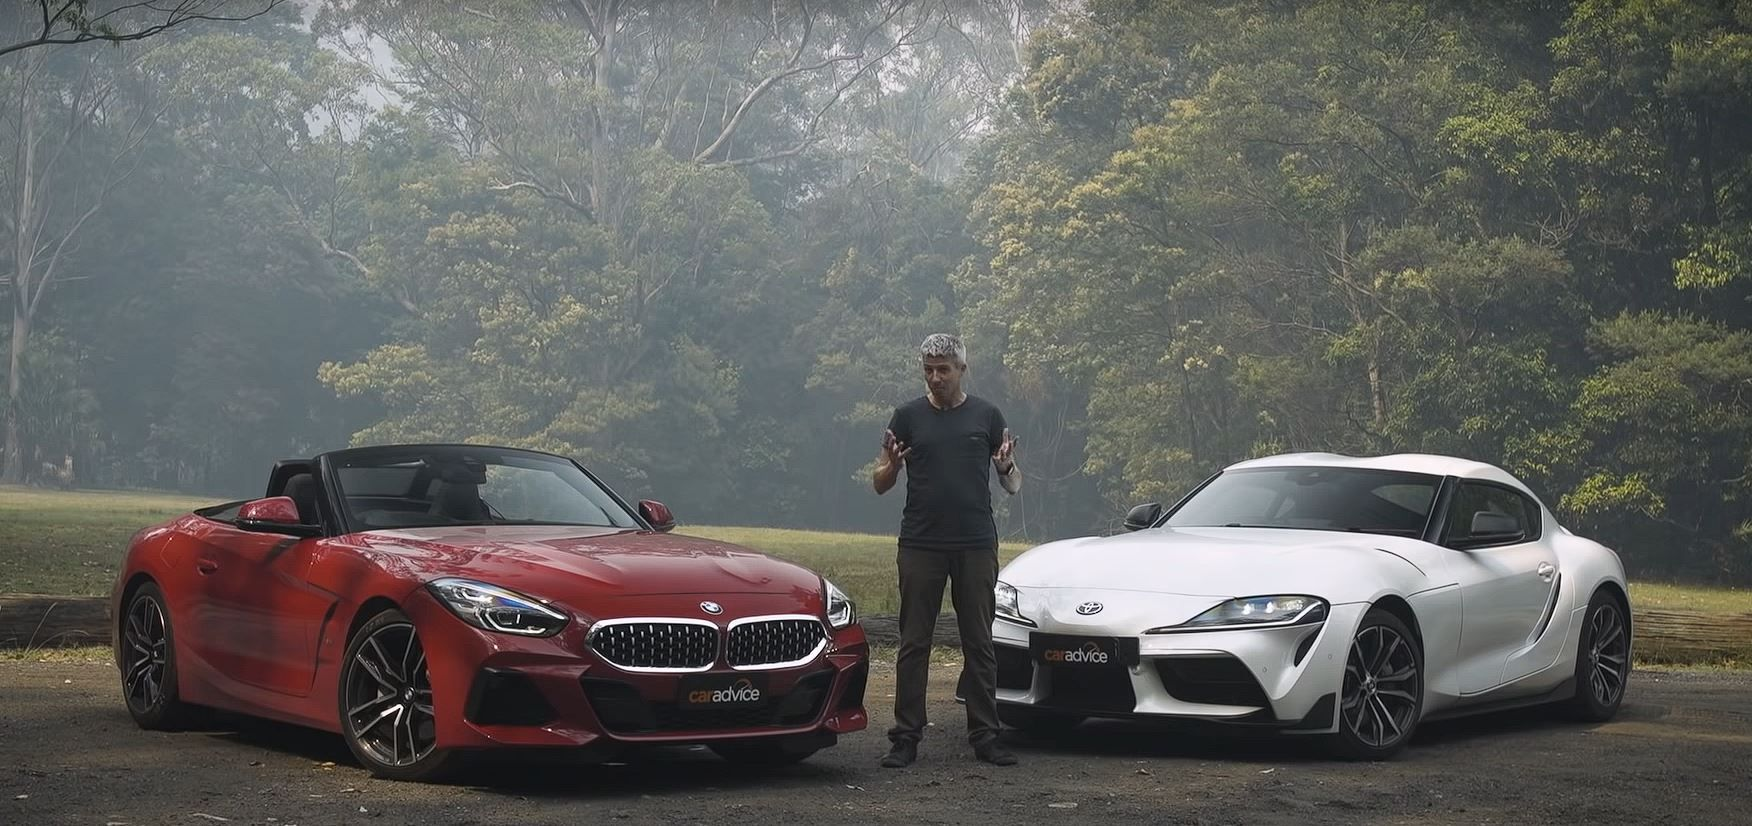 Video Bmw Z4 Sdrive20i And Toyota Supra Compared In Australia In 2020 Bmw Z4 Toyota Supra Bmw